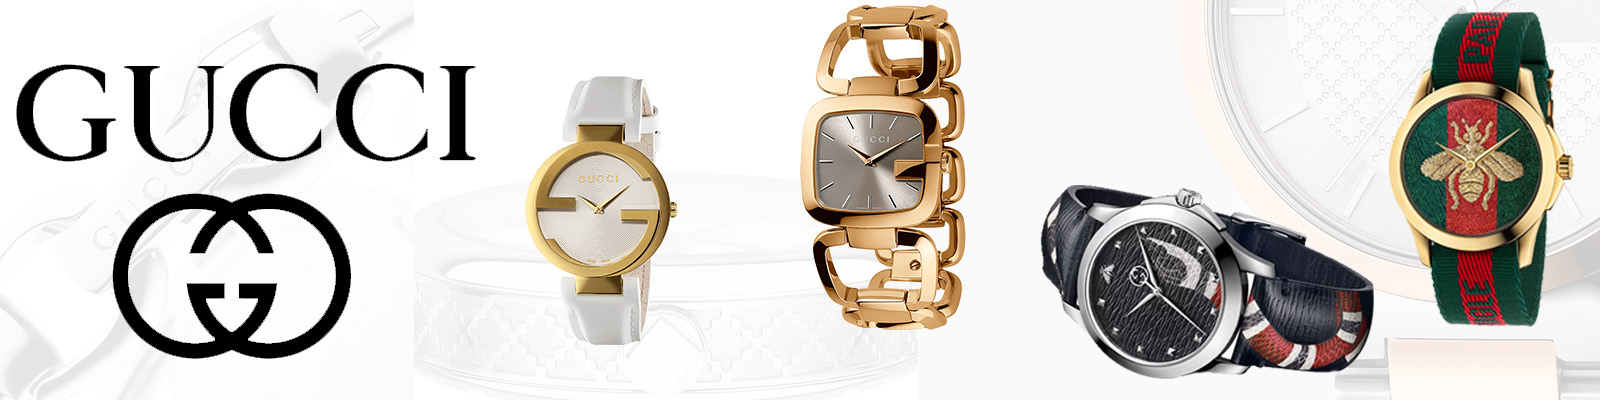 7db5b9bb7a3 Buy Gucci Watches for Men   Women Online in Mumbai